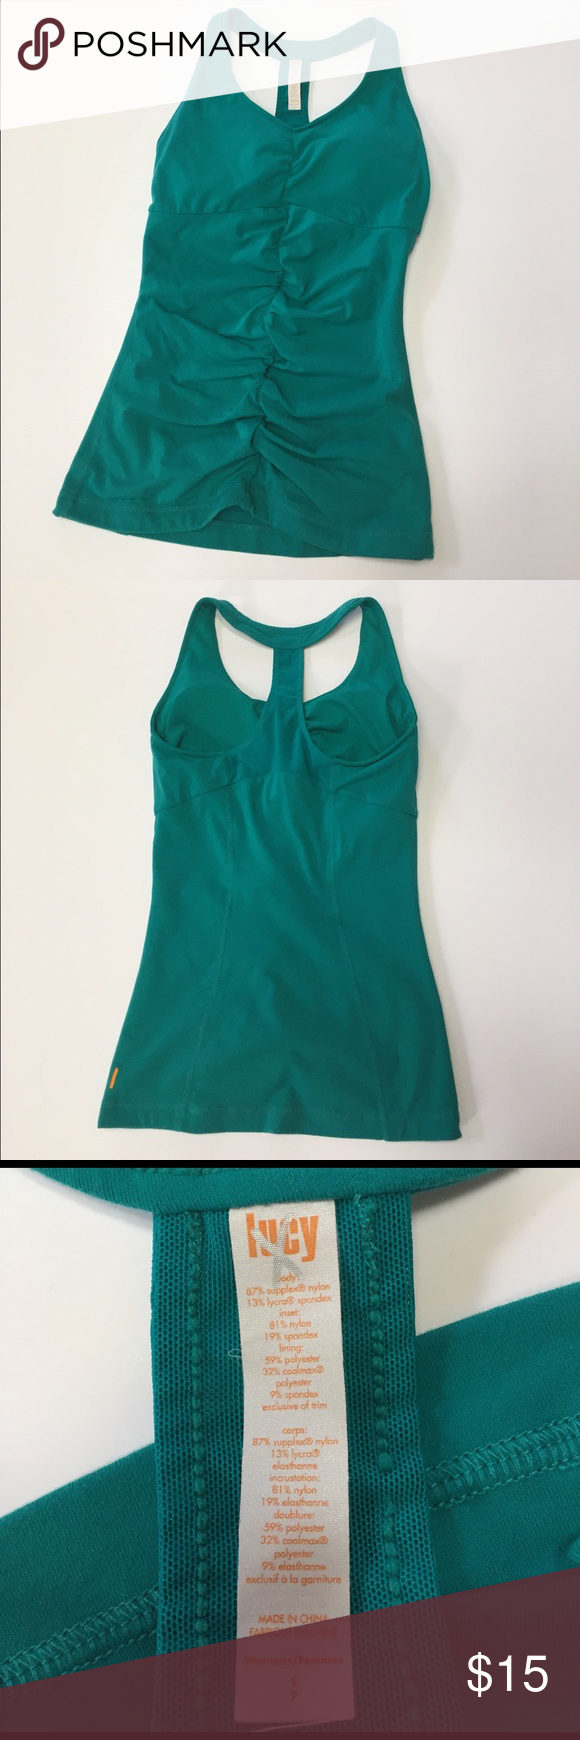 Lucy fitness workout tank top Lucy workout tank top in gently worn condition. No holes or stains. Size small. The padding in the bra is removable. Lucy Tops Tank Tops